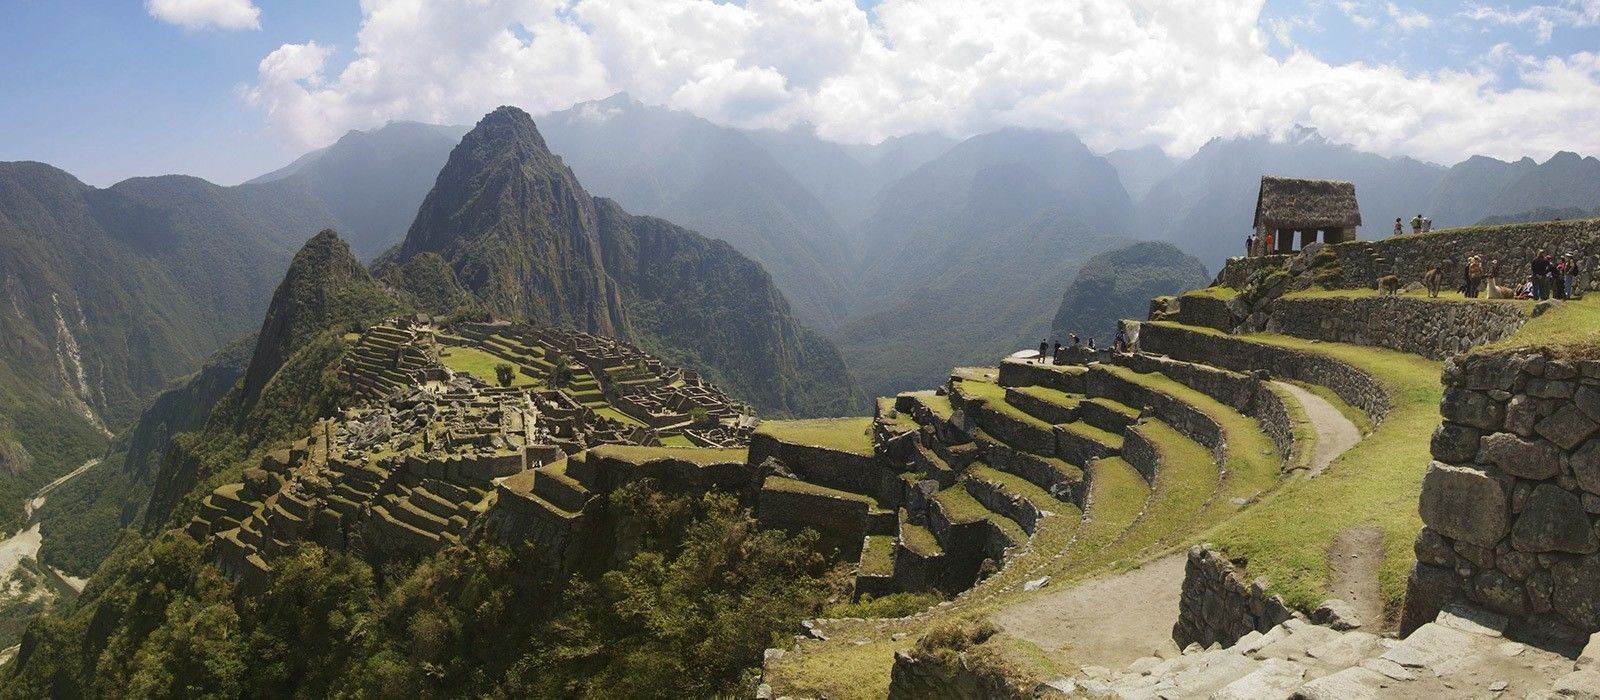 Peru: In the Land of the Incas Tour Trip 3